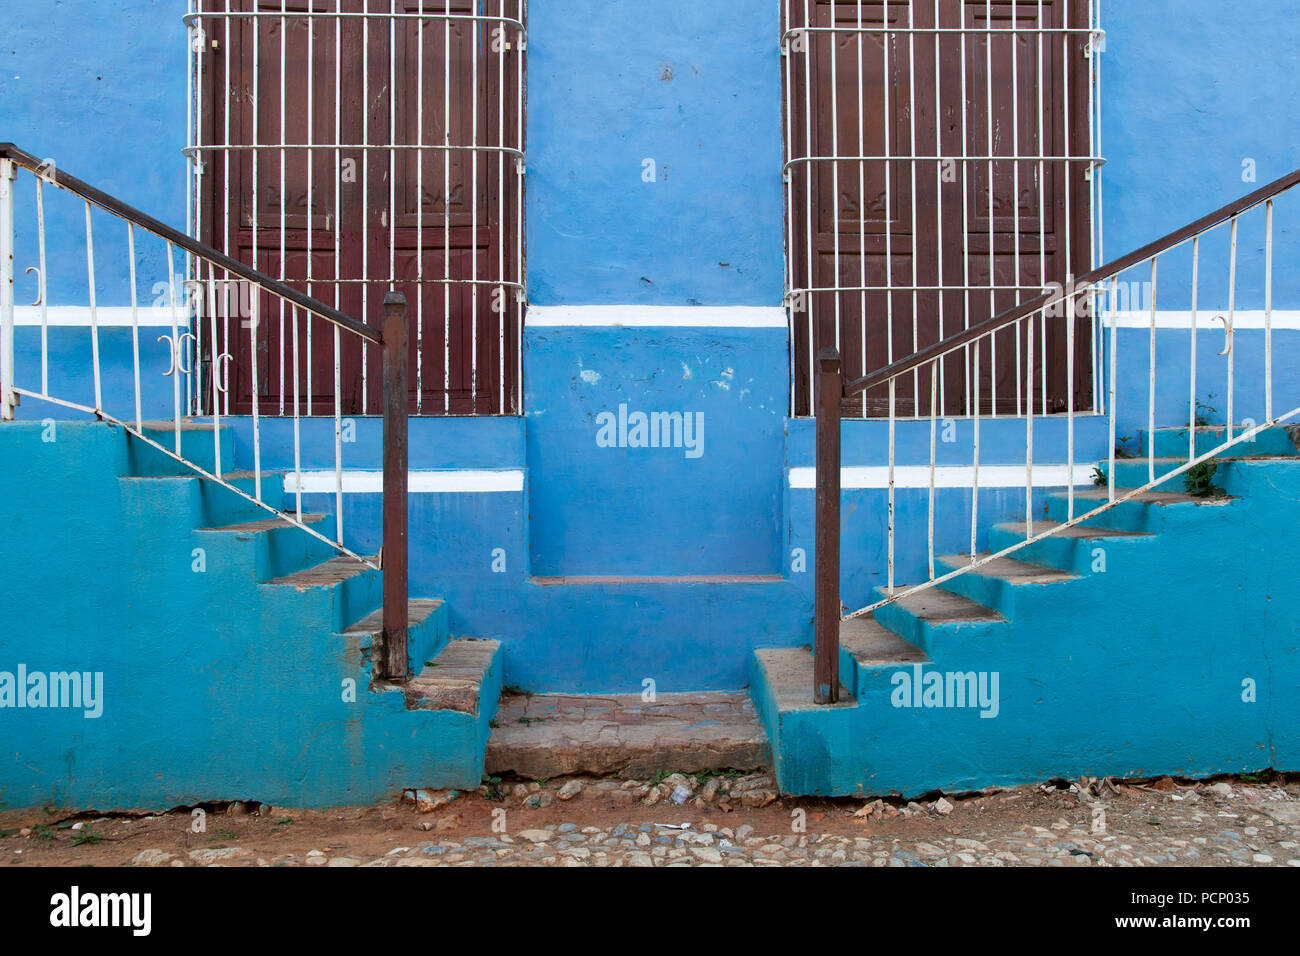 Caribbean, Cuba, Trinidad, two staircases in front of blue exterior facade - Stock Image